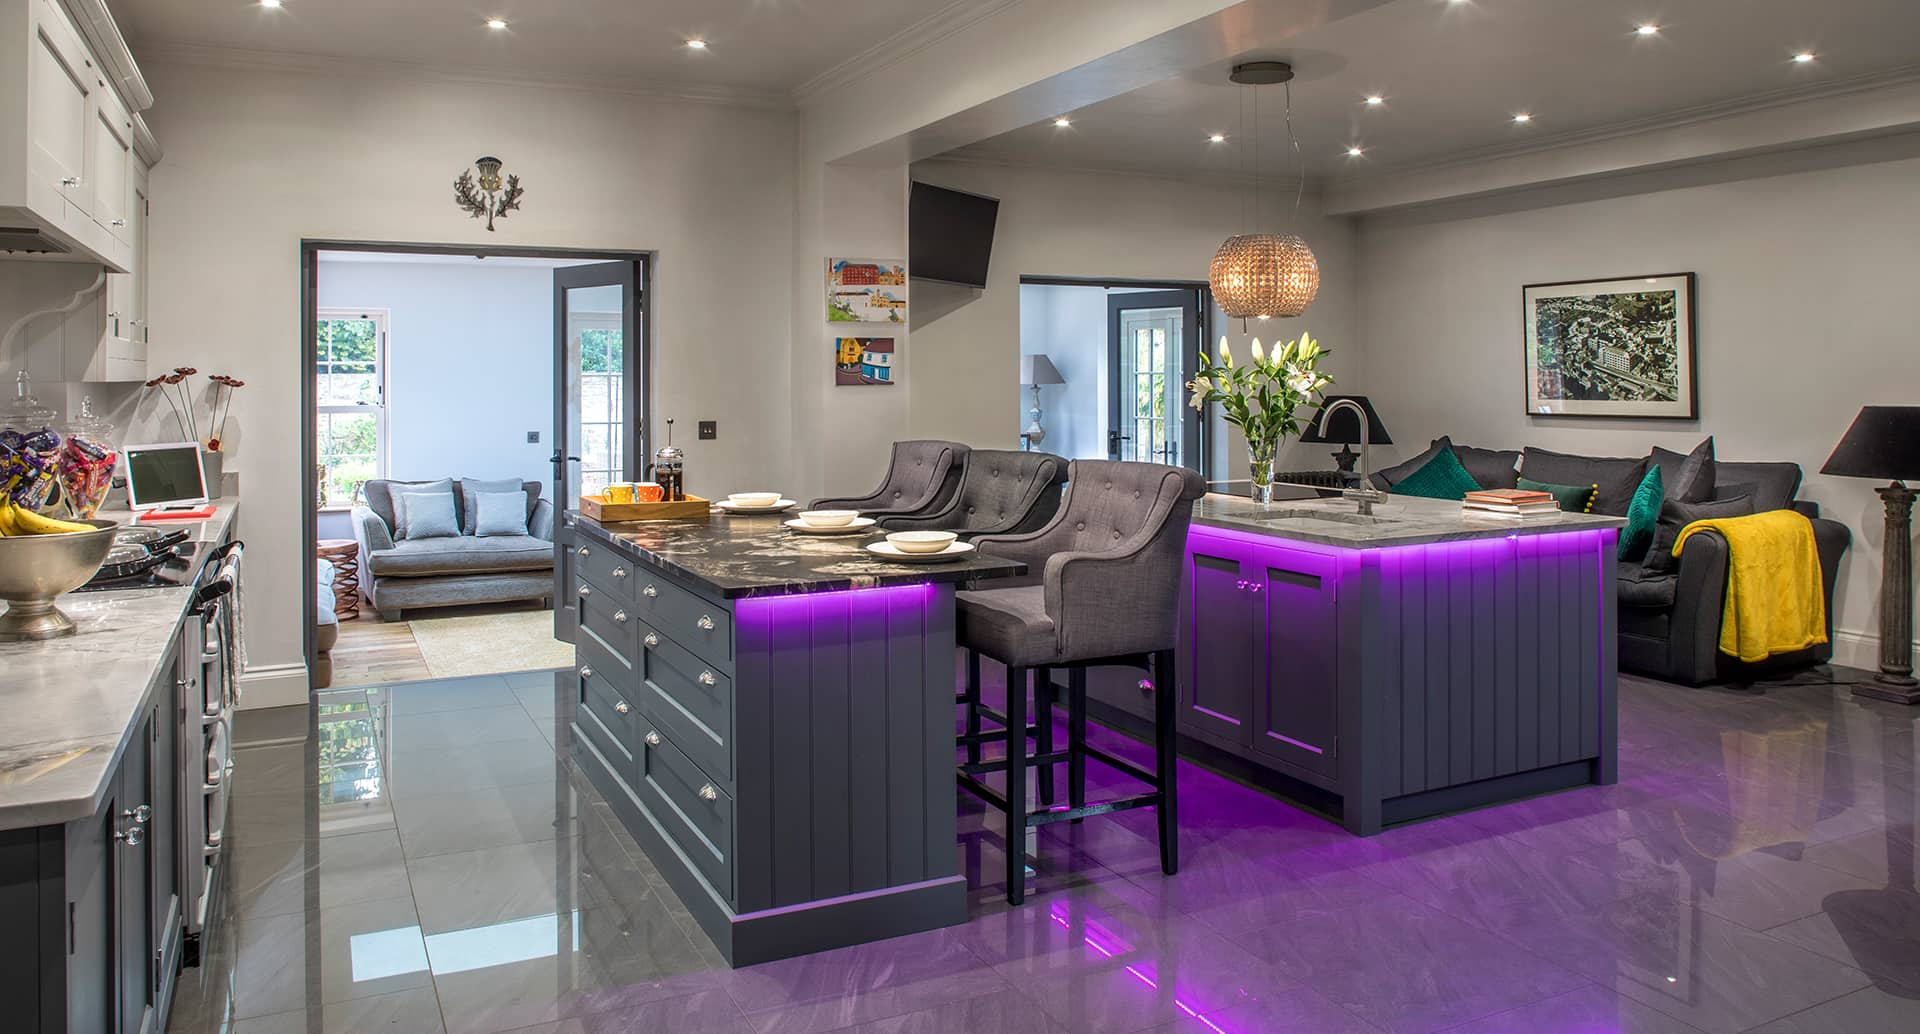 A beautiful, bespoke, fitted kitchen with custom LED lighting under the worktops.